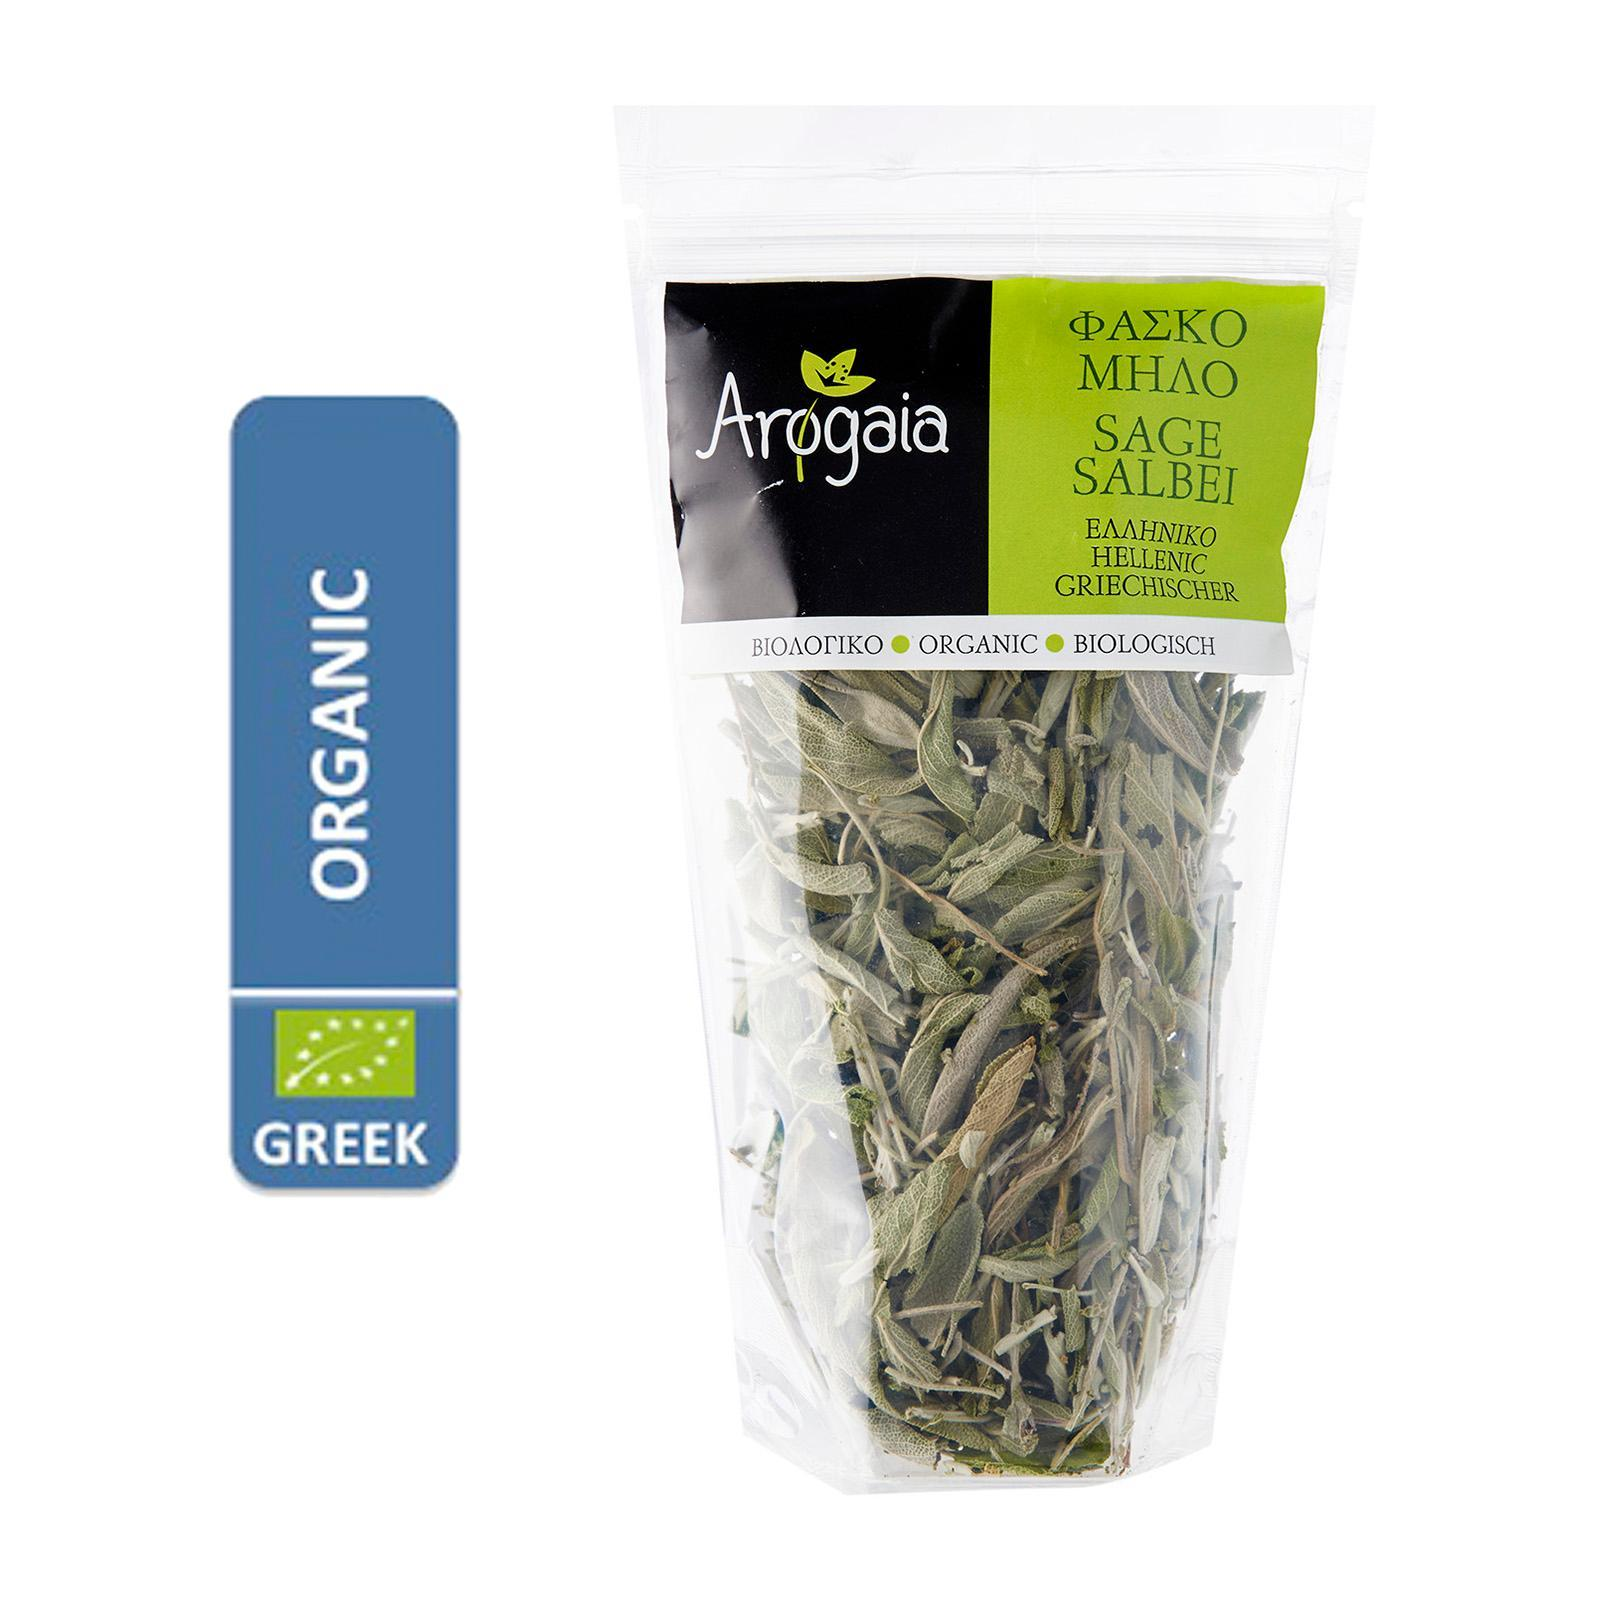 Arogaia Organic Greek Sage In A Re-Sealable Bag - By Agora Products